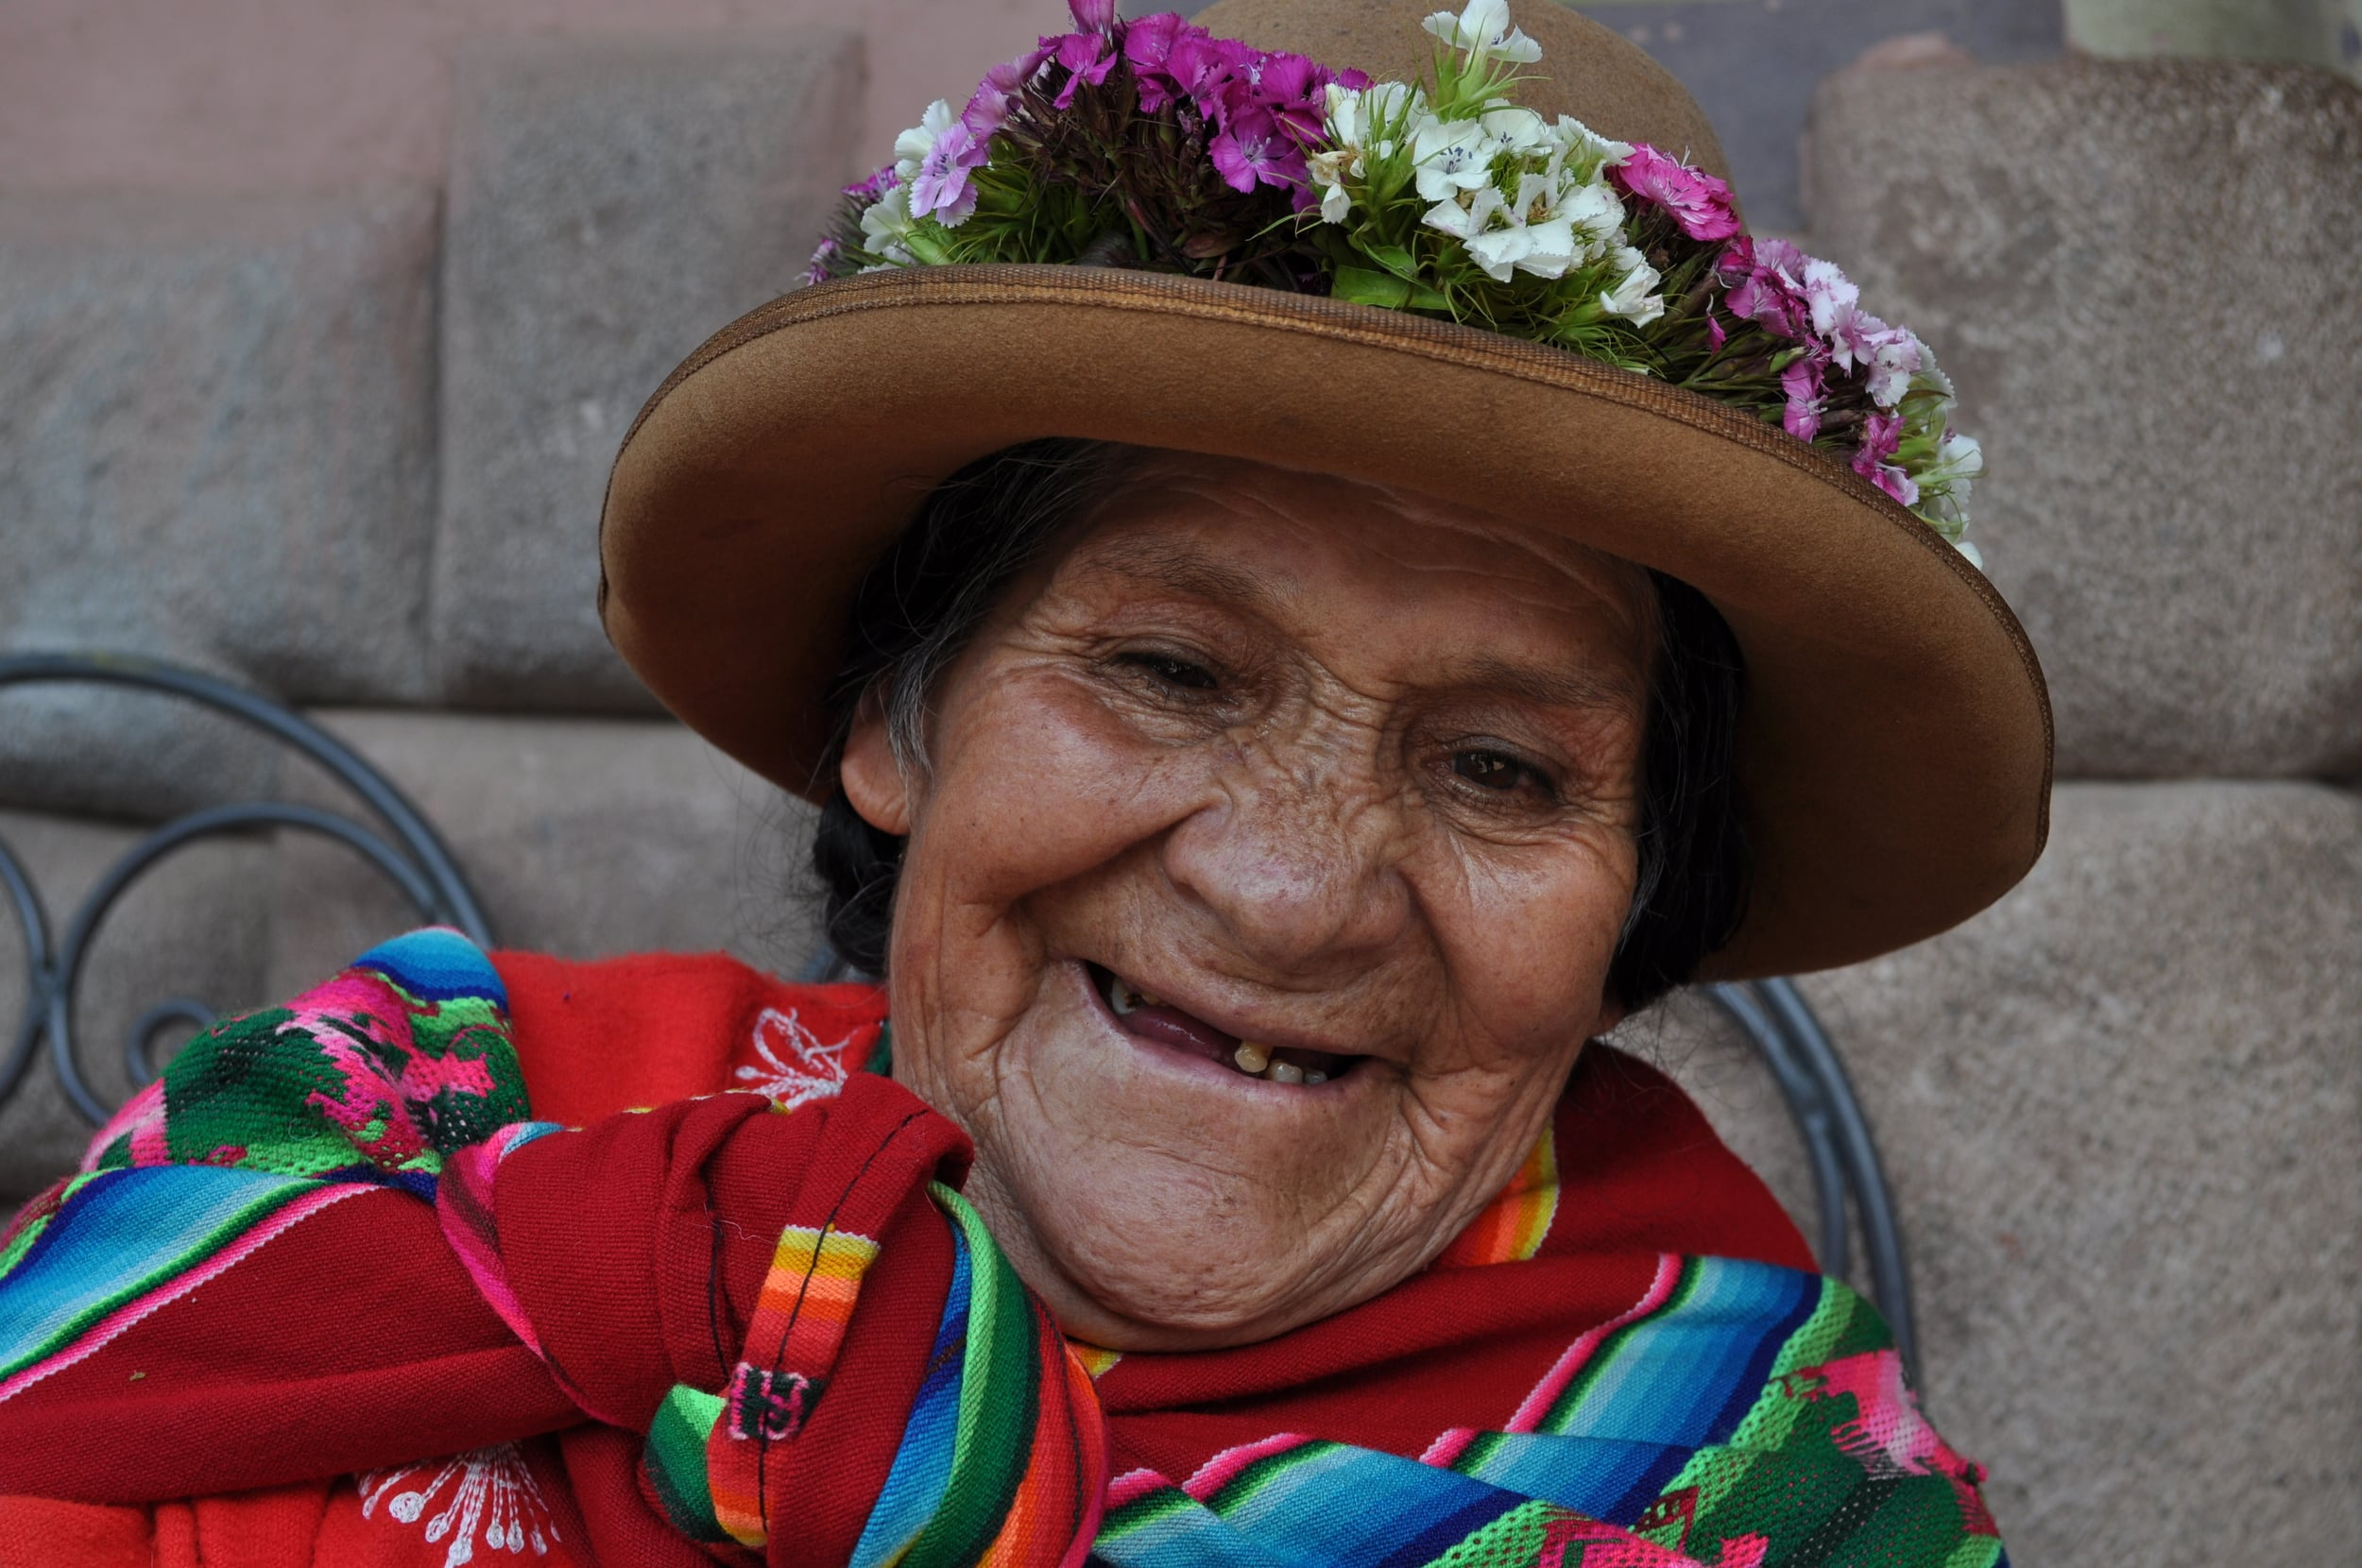 For some soles this beautiful elderly woman posed for our lens. Photo: Pamy Rojas